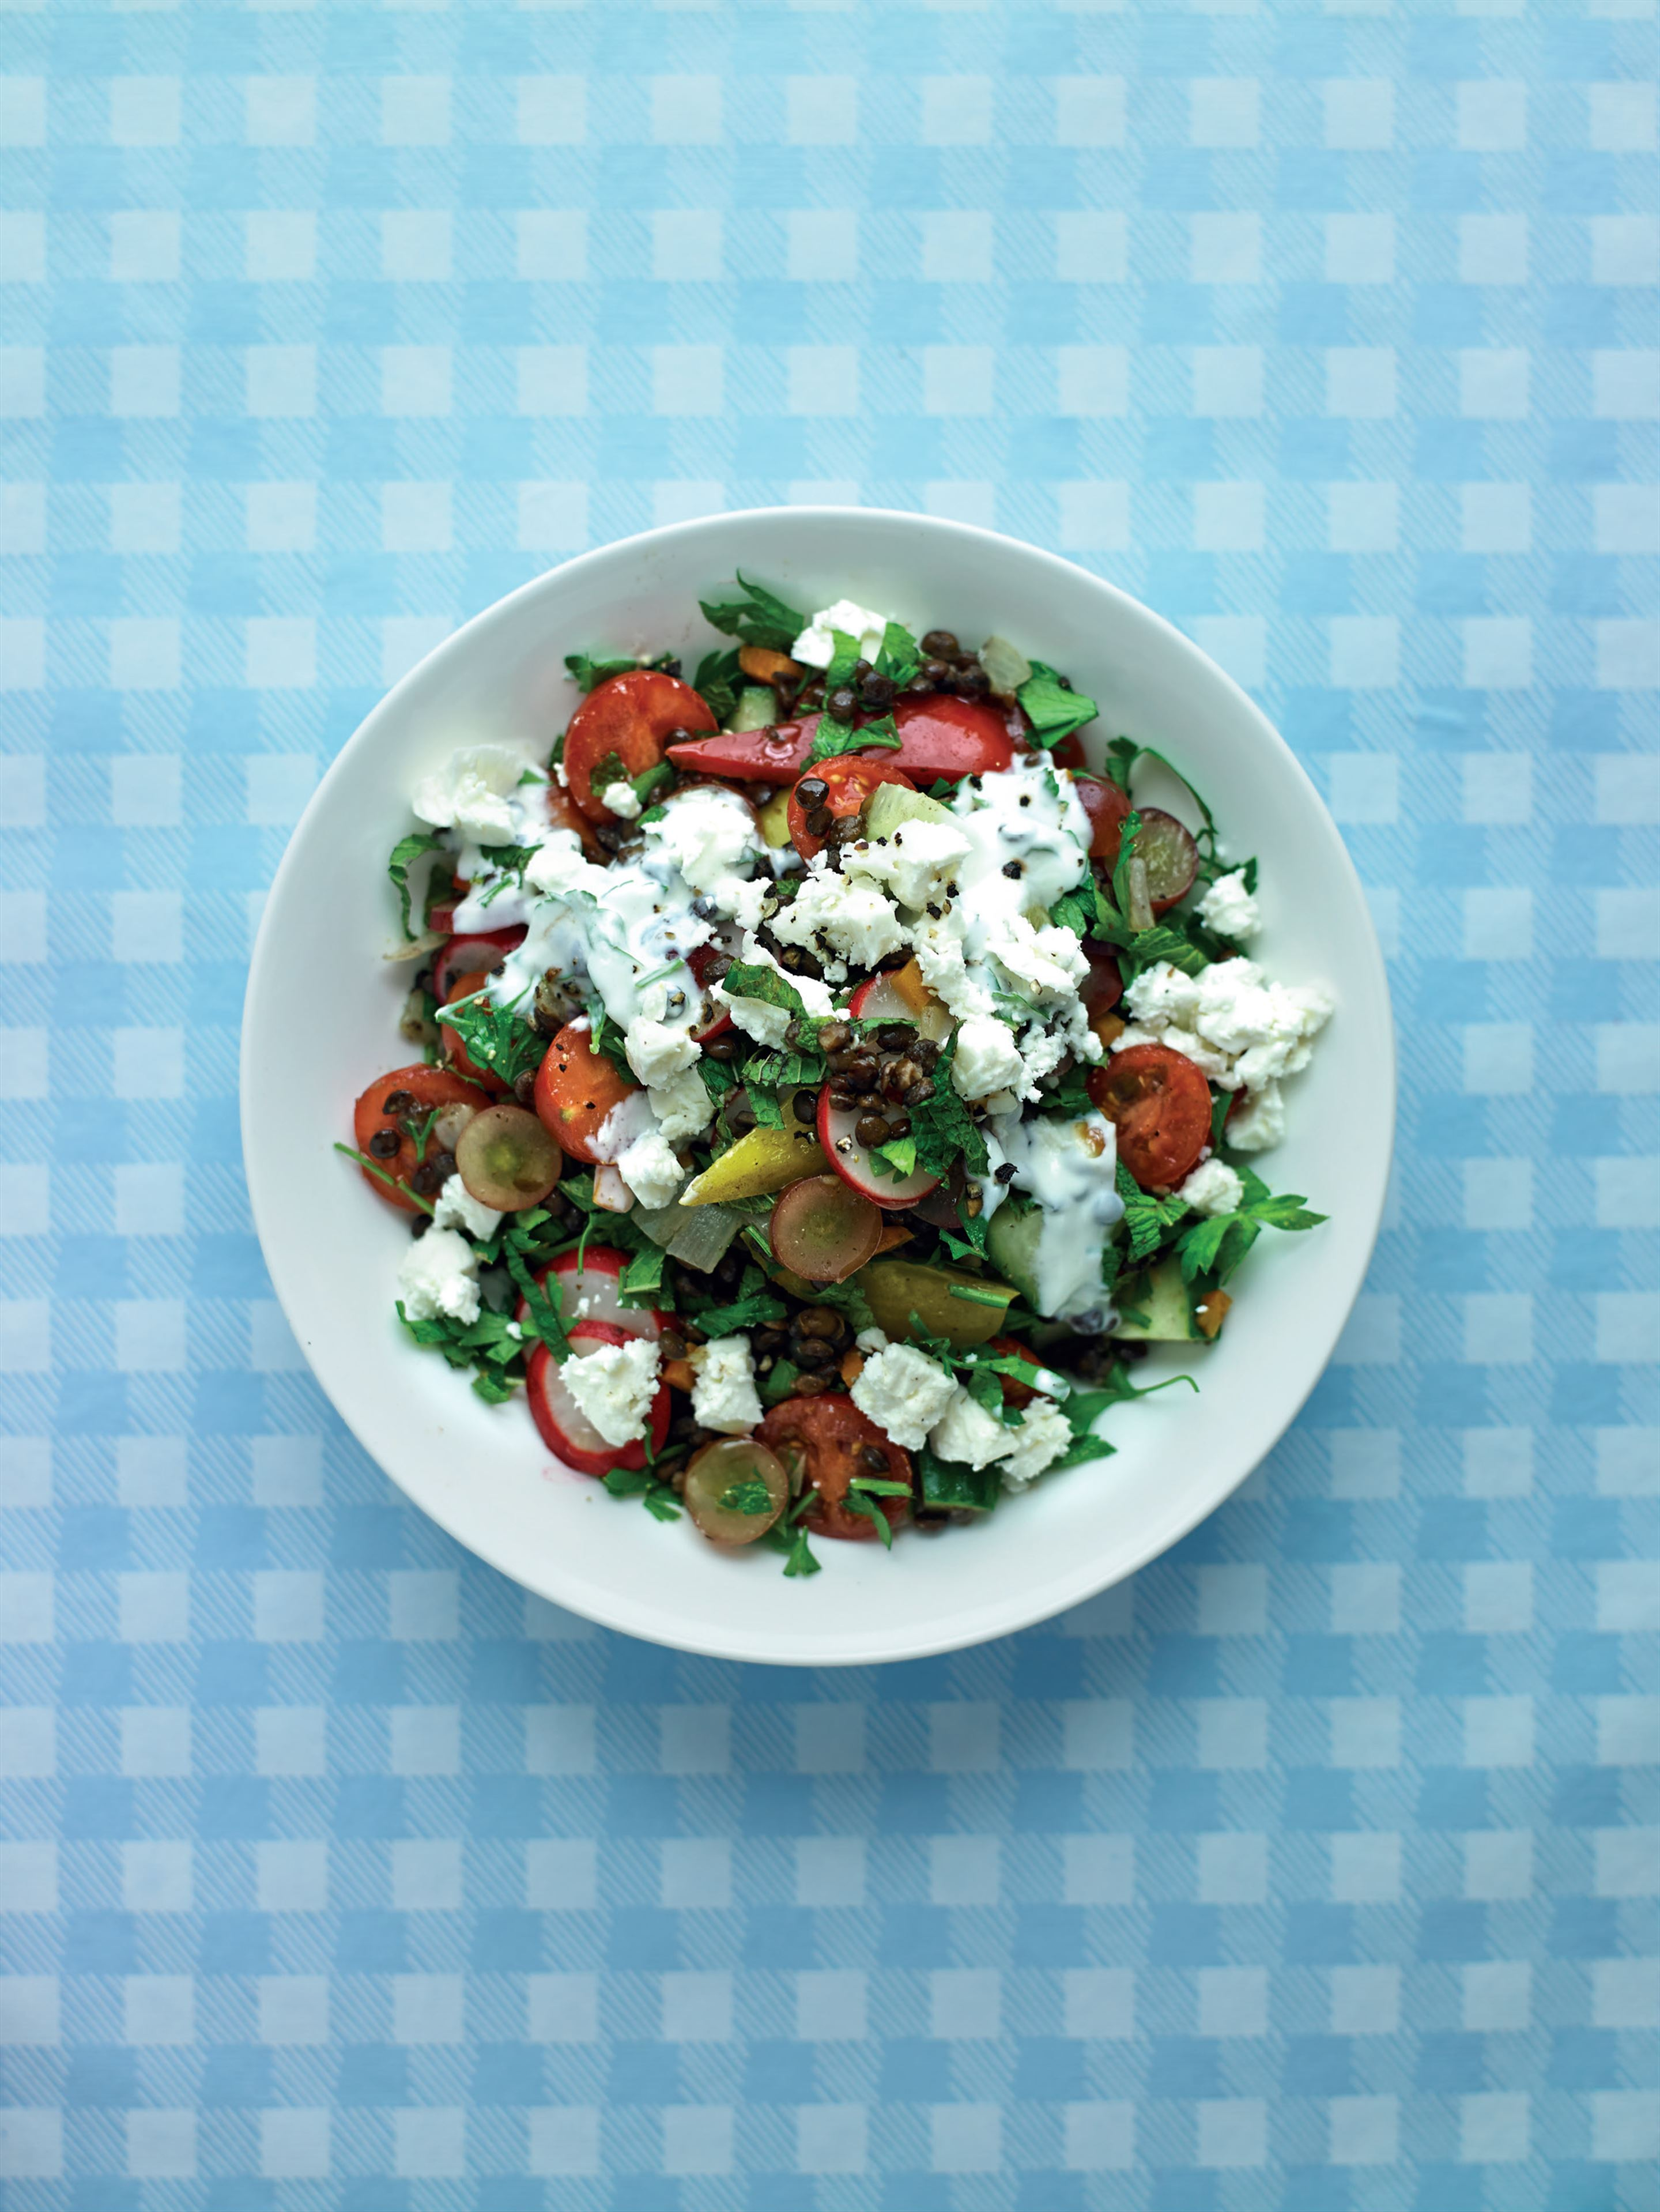 'Tabbouleh' with lentils, red grapes and feta